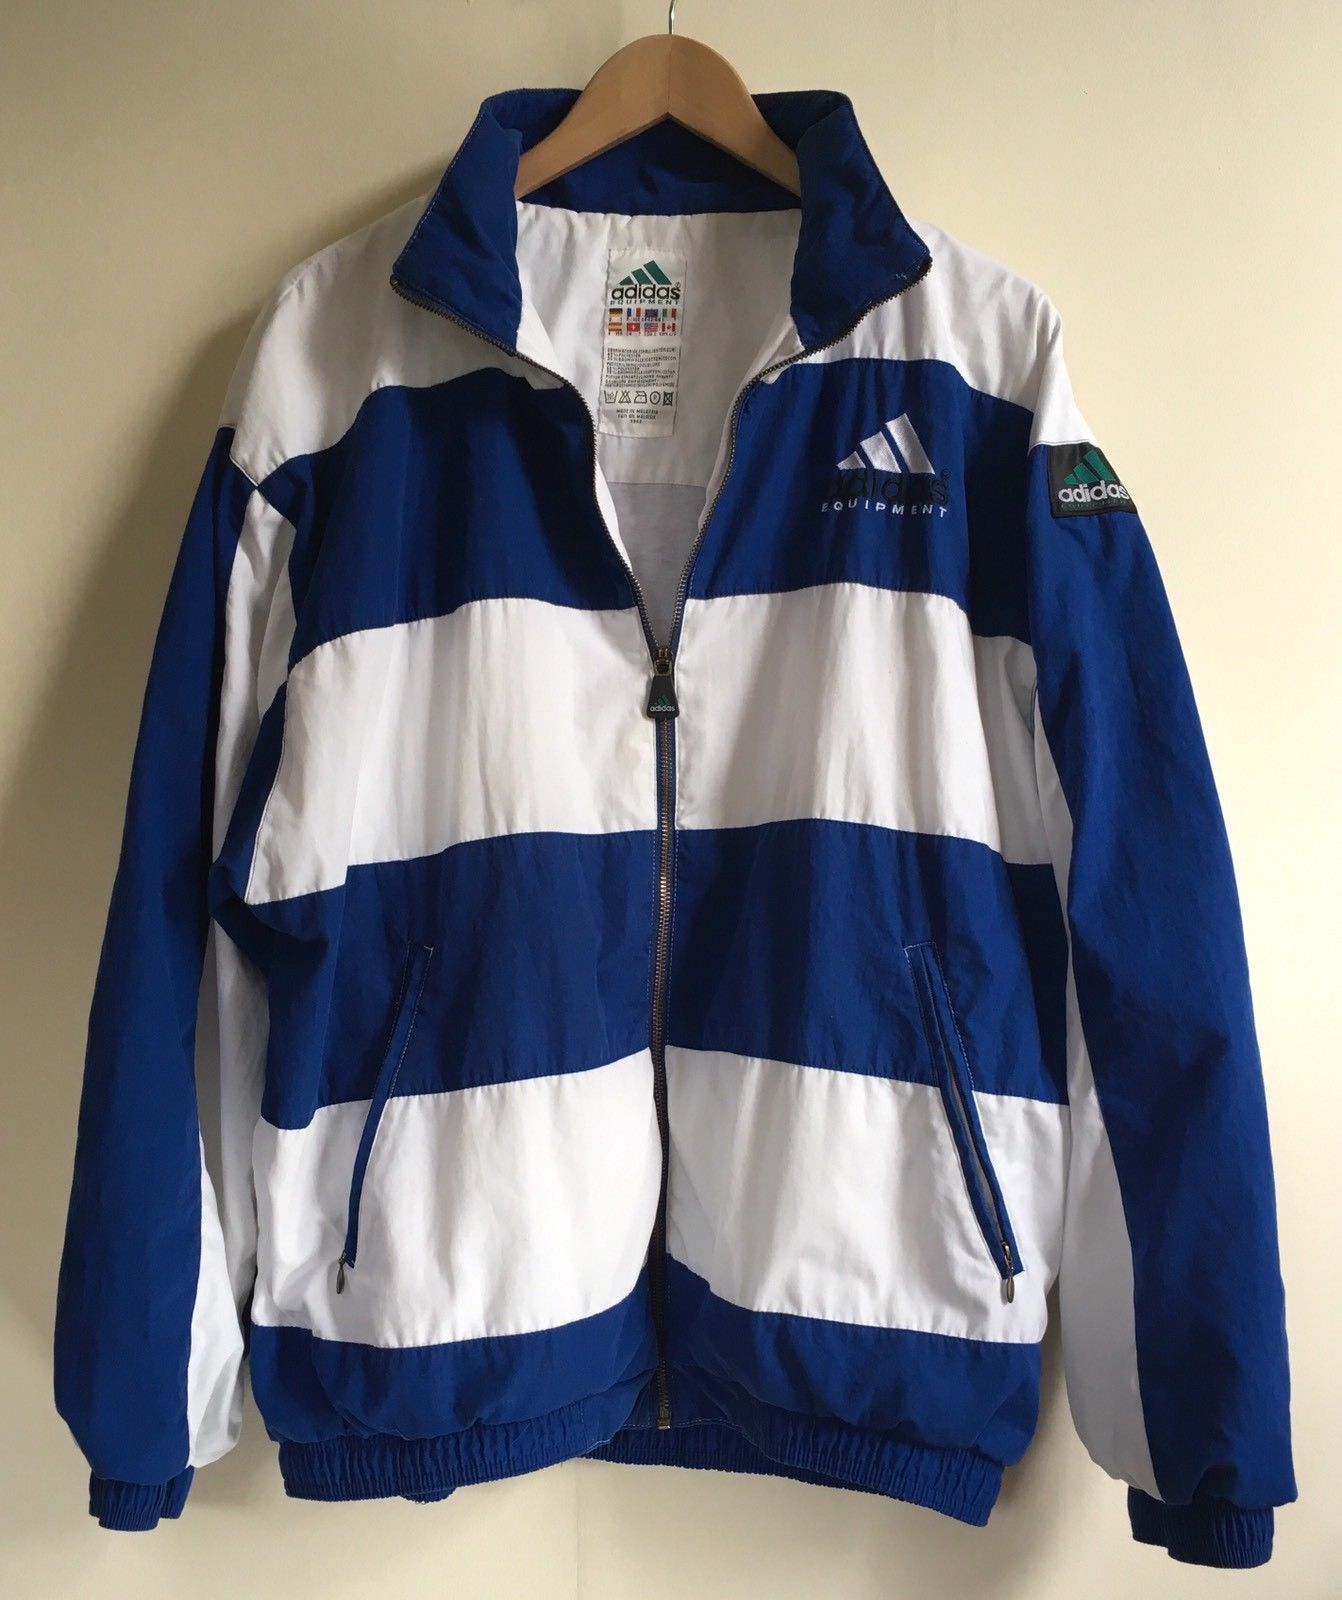 0e286fdcd7ef A Rare Vintage Adidas Equipment Jacket in a blue and white stripe Made in  Malaysia Excellent